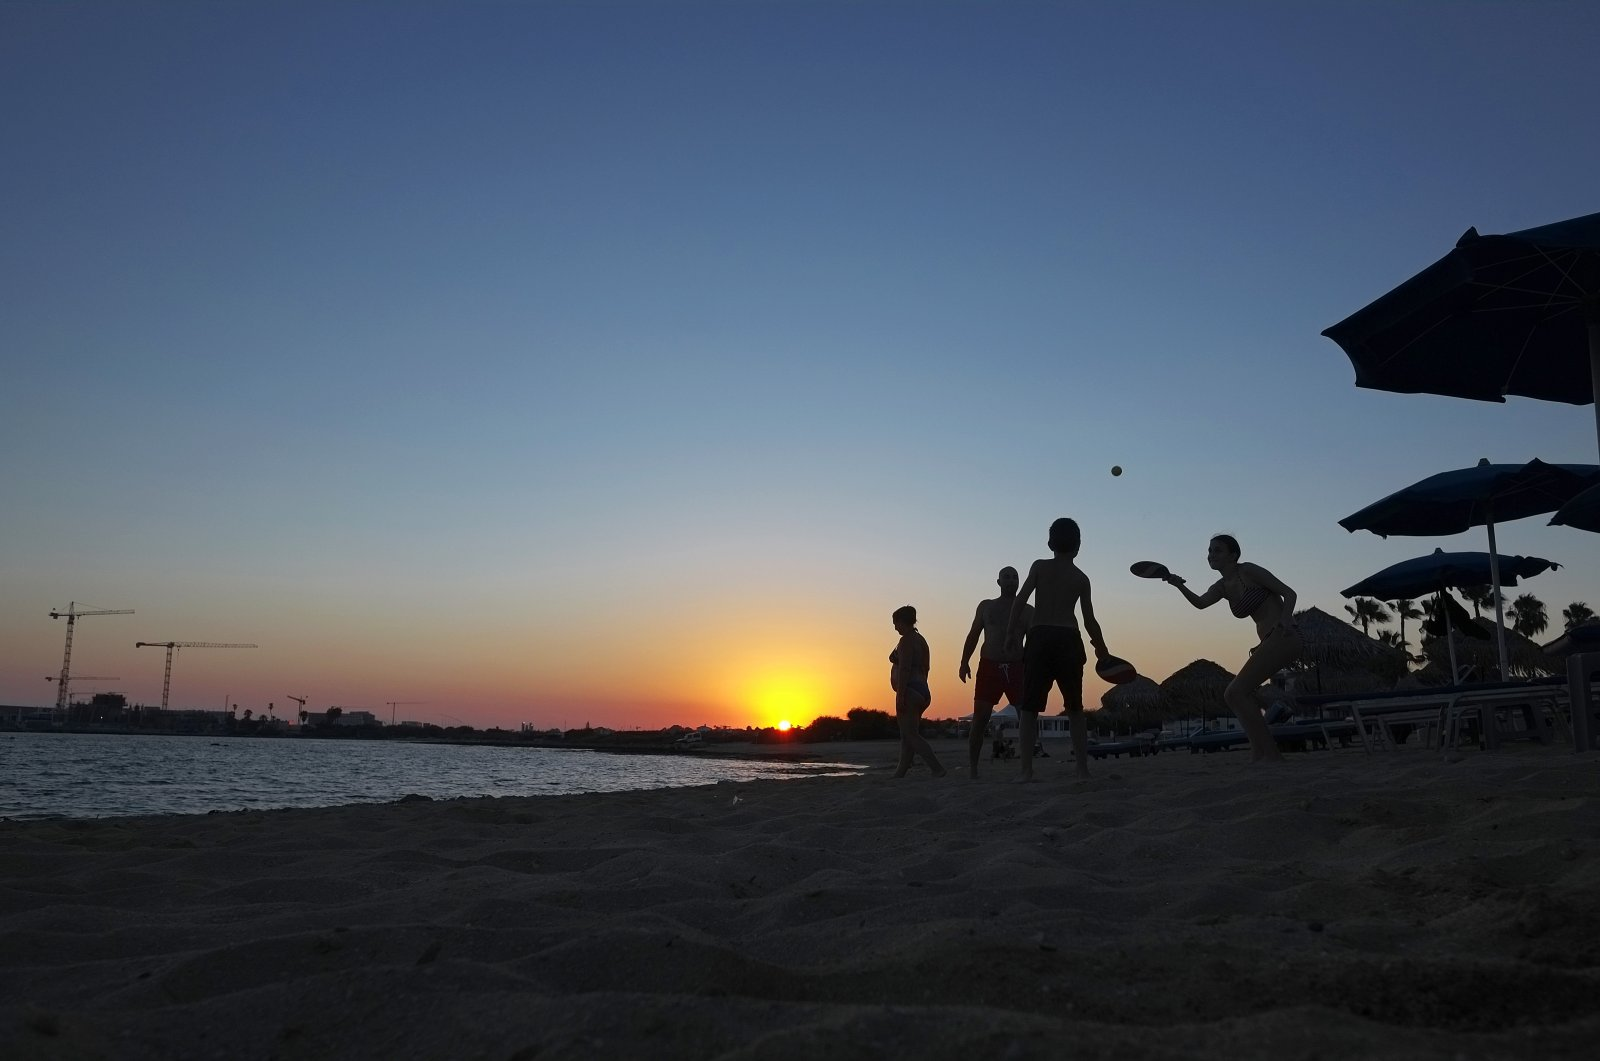 People play racketball at the beach during sunset in the coastal resort of Ayia Napa on the Greek side of the Eastern Mediterranean island of Cyprus, Aug. 22, 2020. (AP Photo)